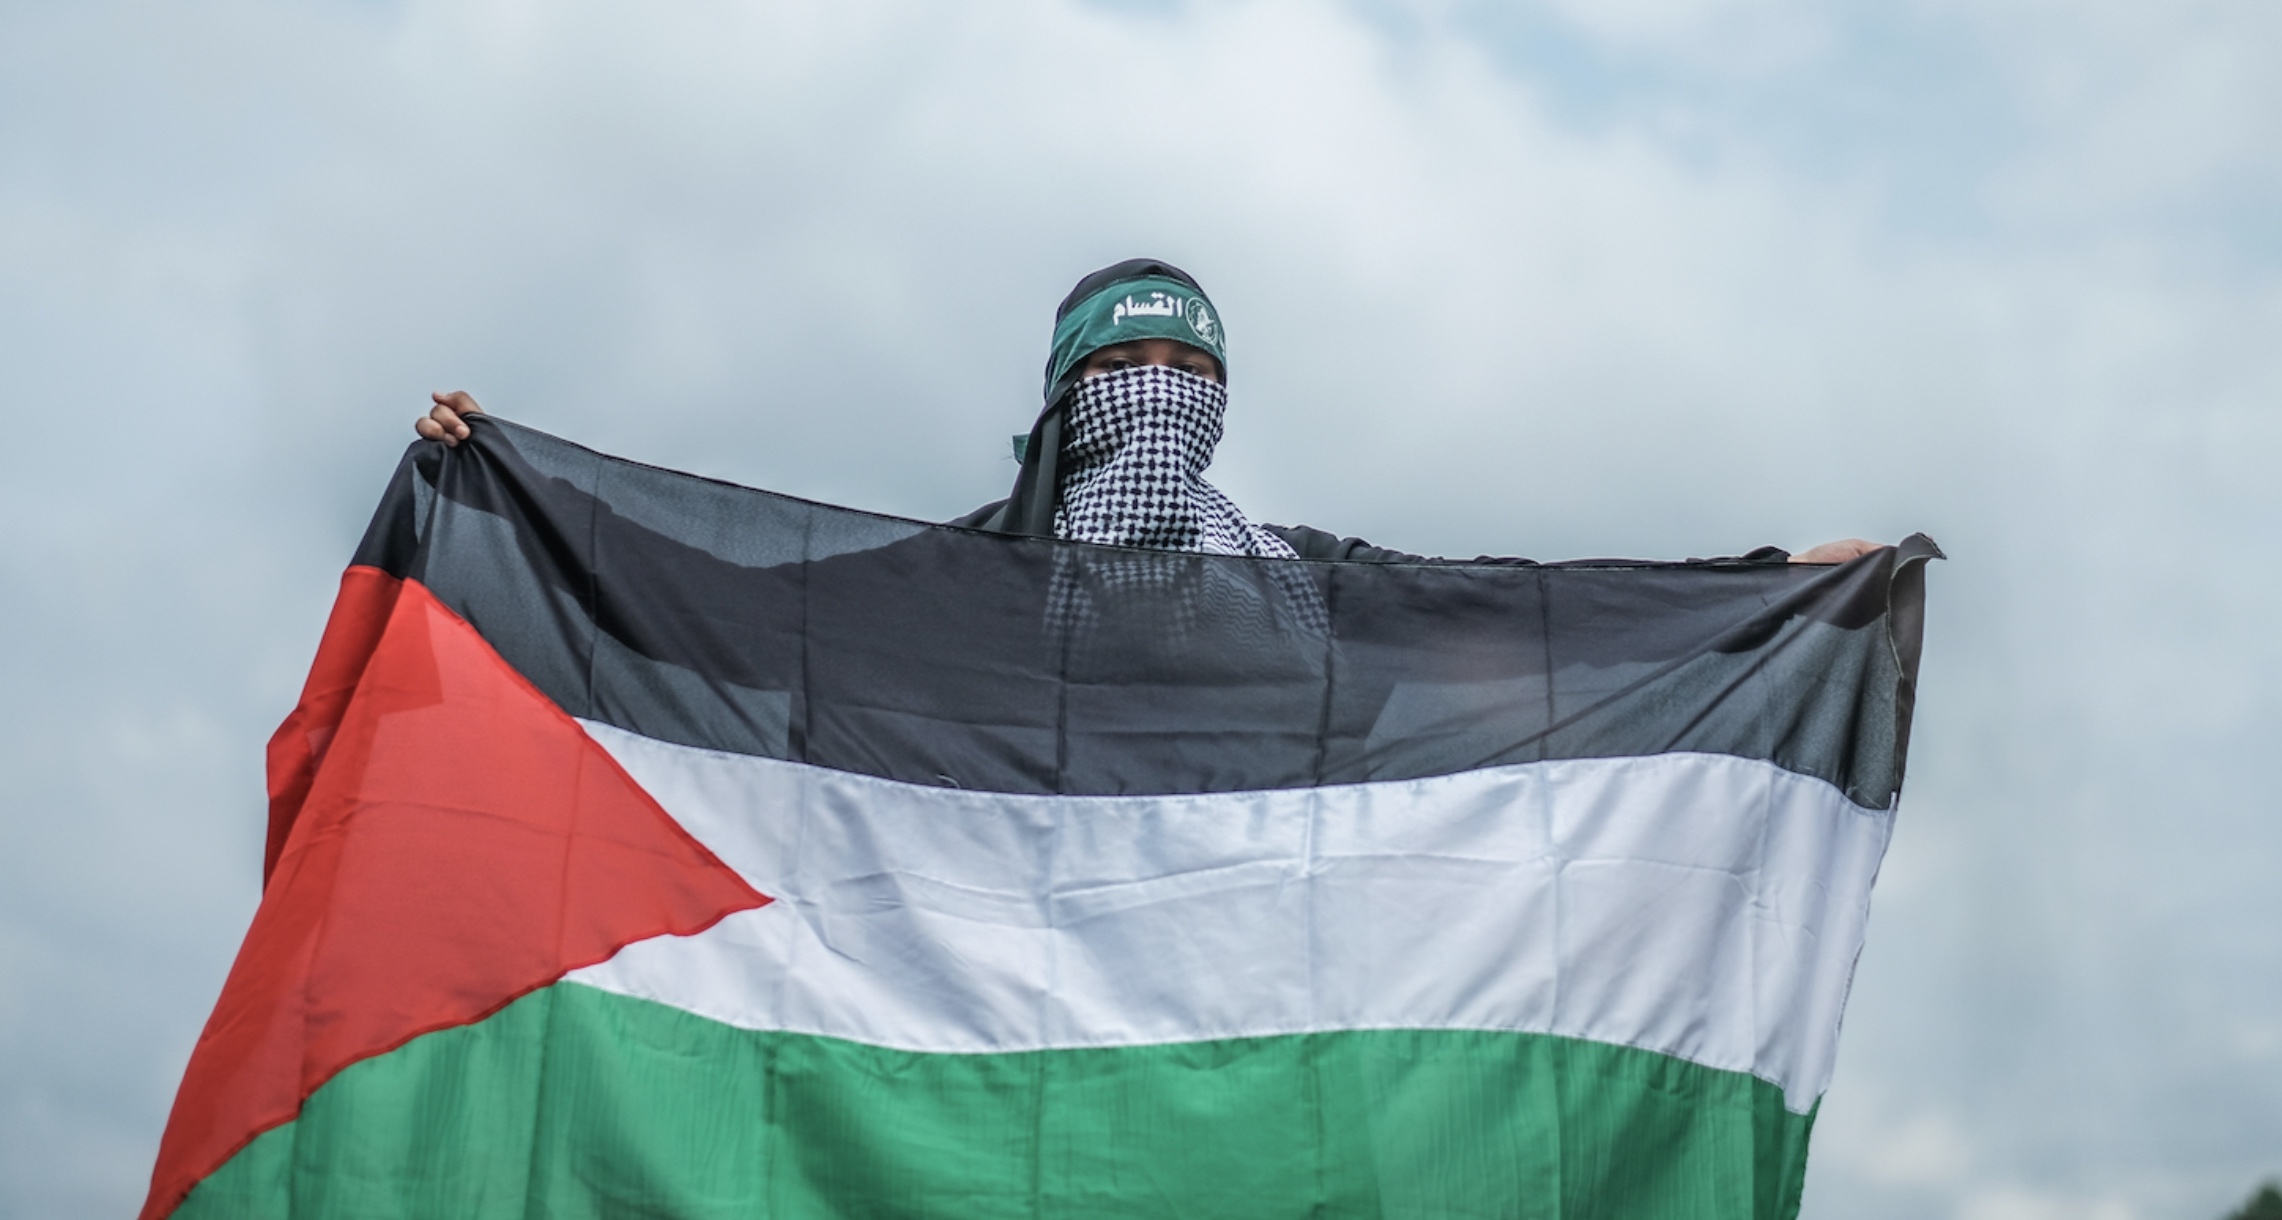 https://static.coindesk.com/wp-content/uploads/2019/08/palestine-middle-east.jpg